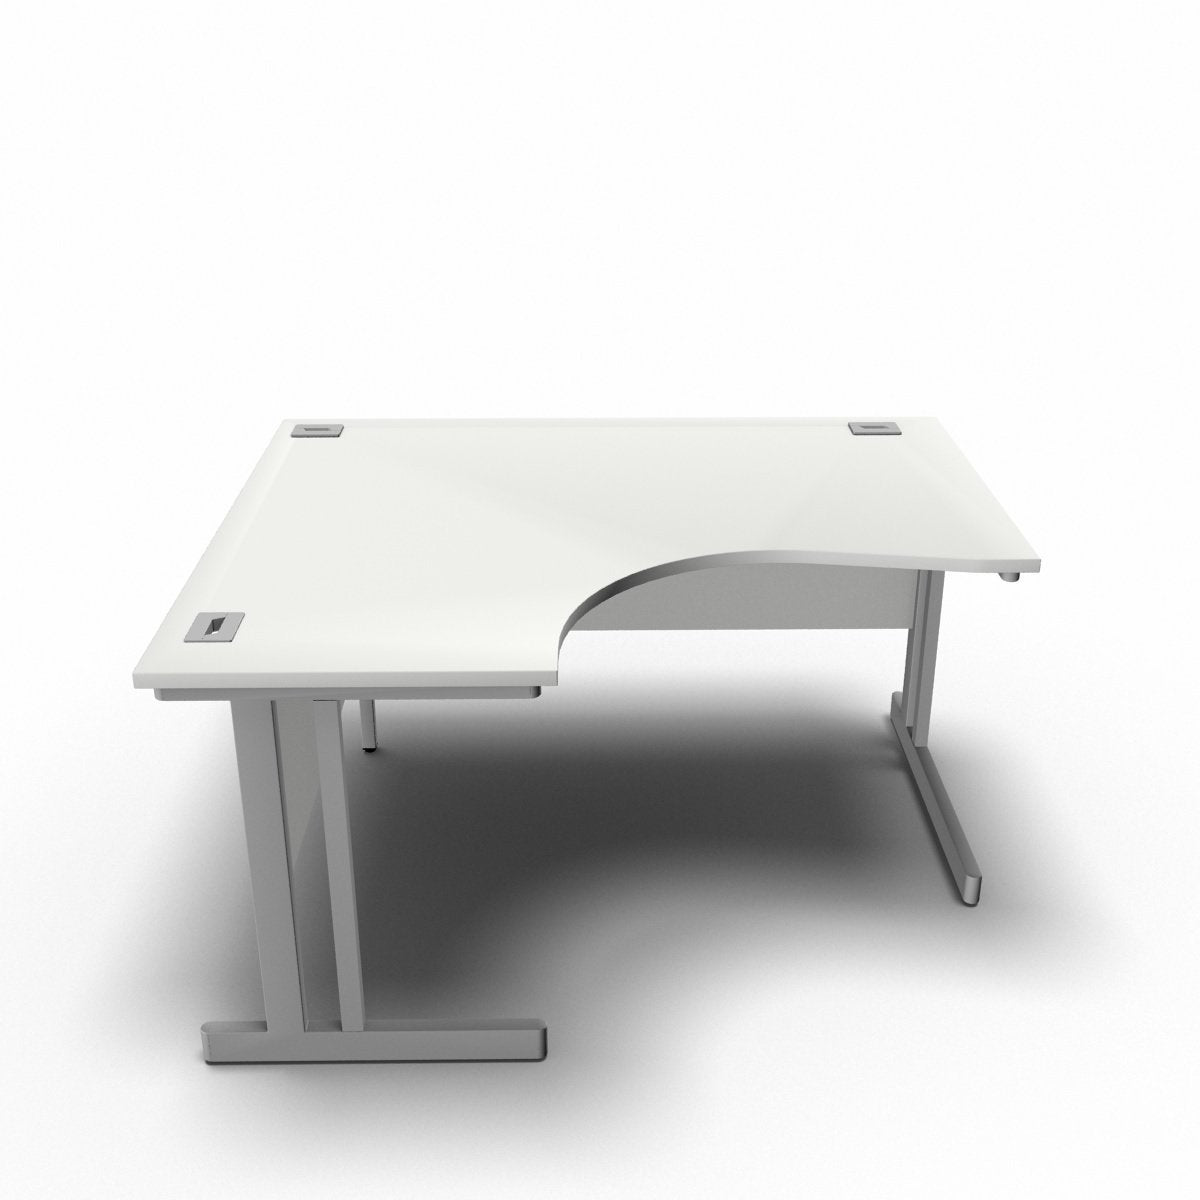 Desk 1400 x 1200 x 800 x 600mm / Left / White Synergy Crescent Desks